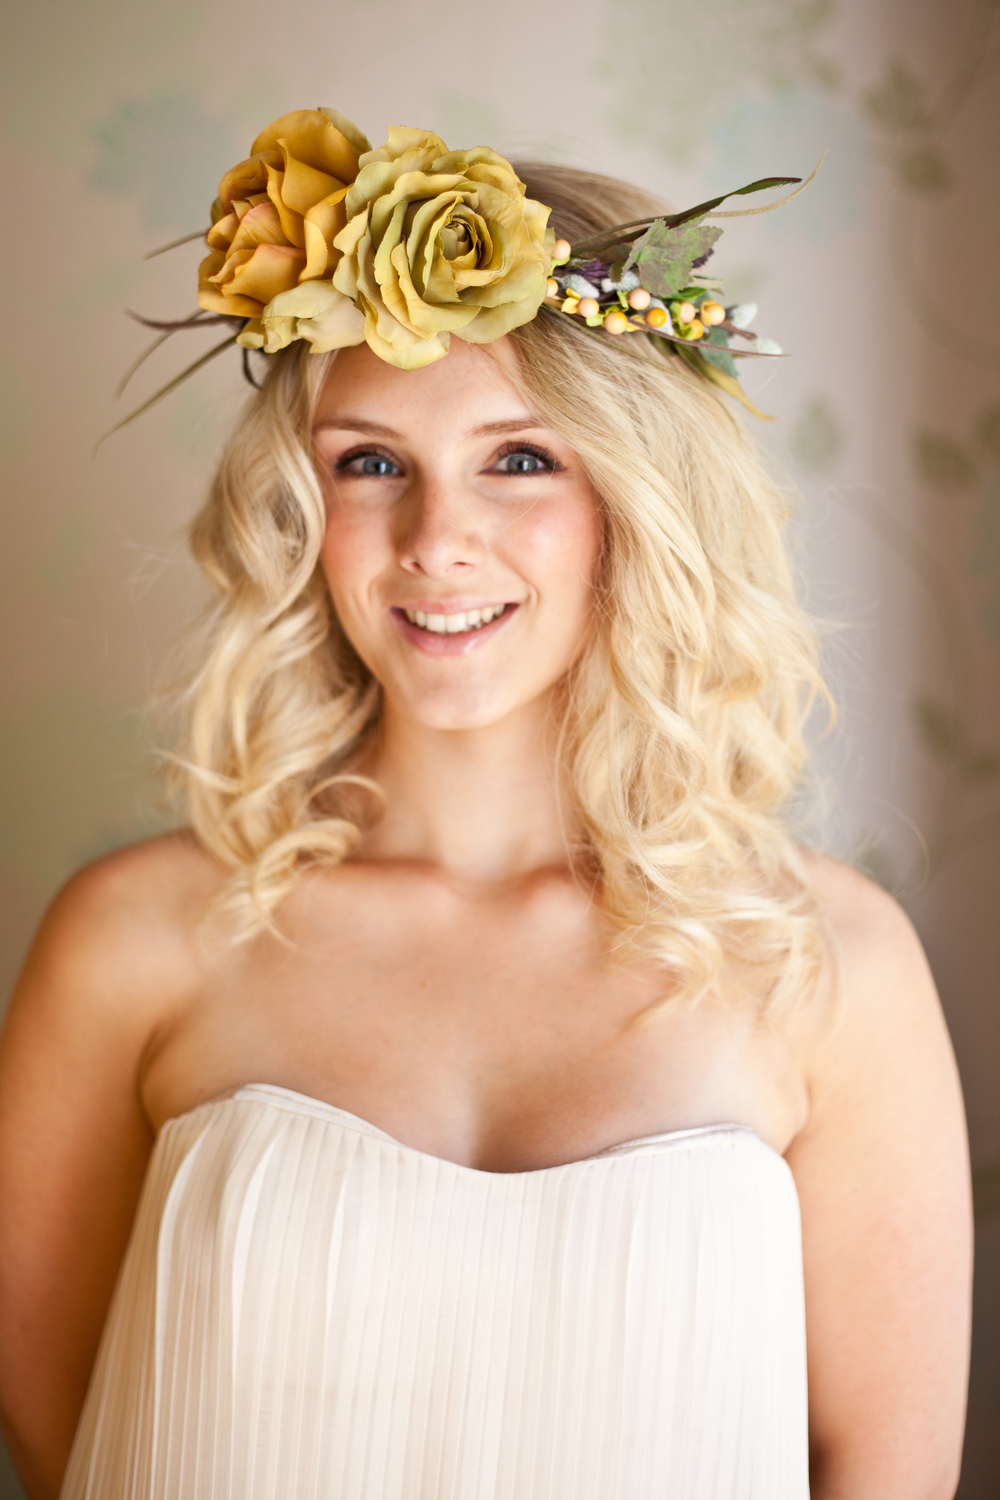 Lovehair floral headbands-051 - Copy.jpg